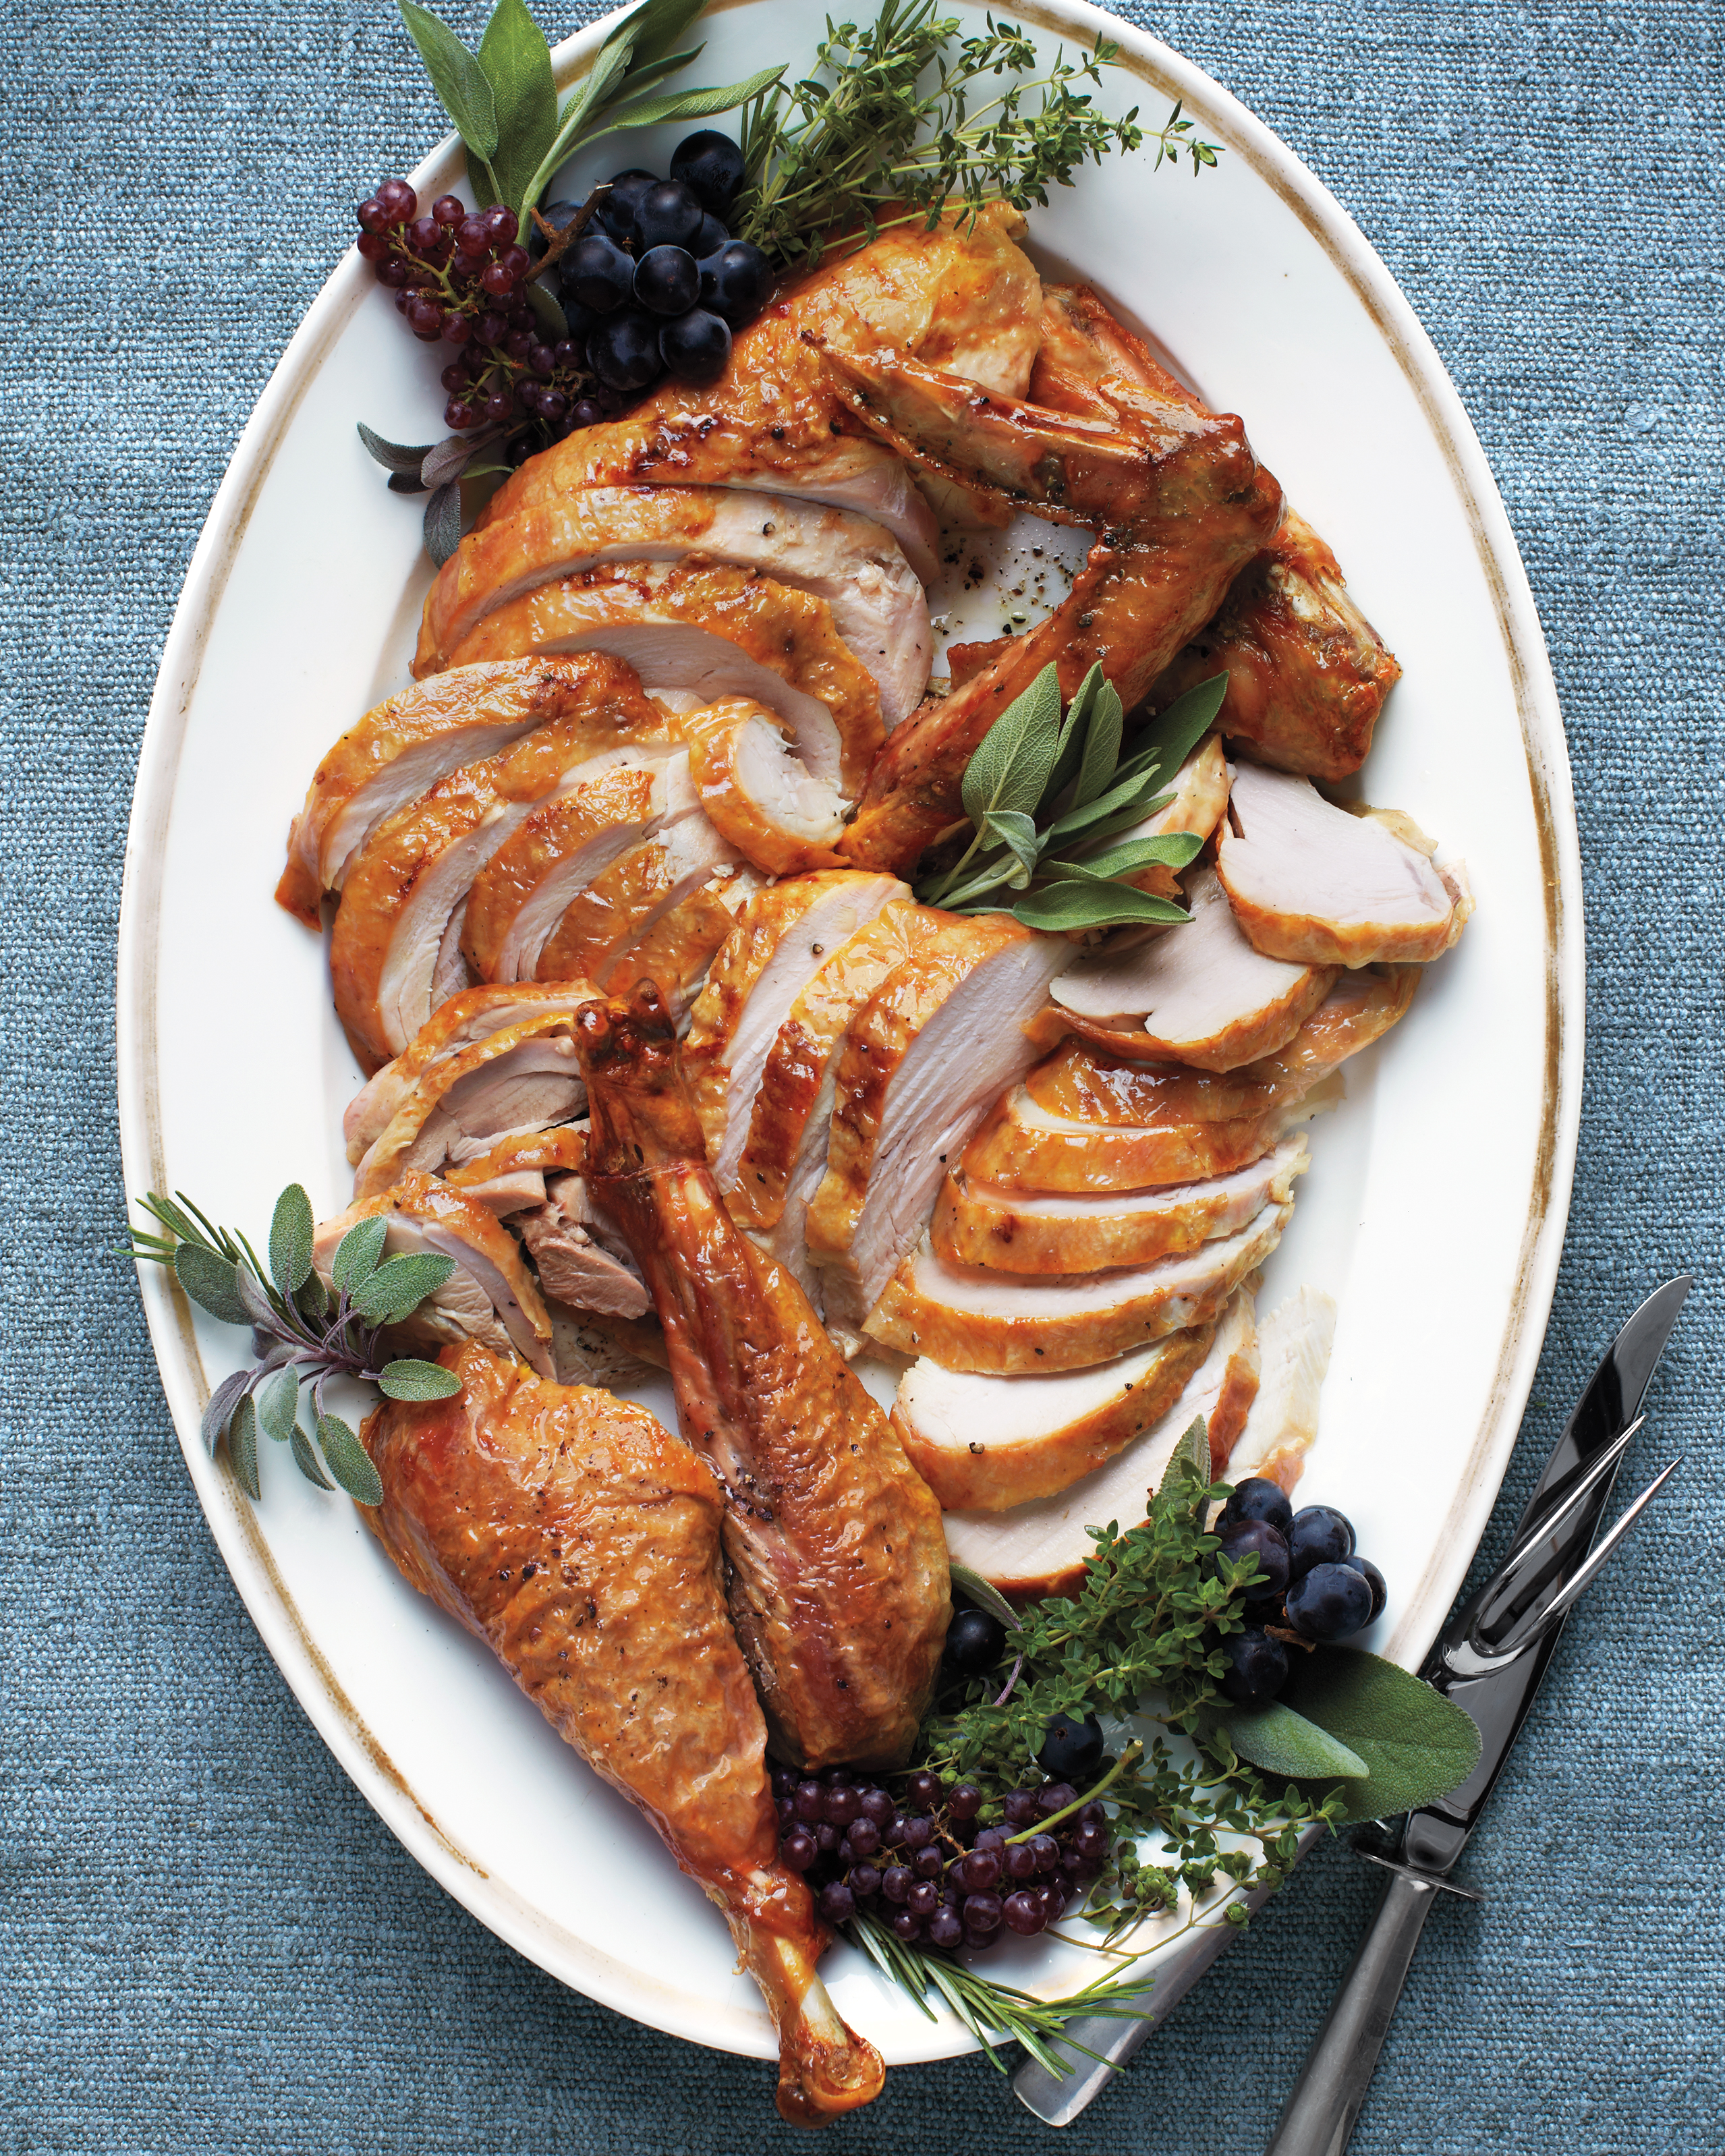 How to Host an Allergy-Friendly Thanksgiving